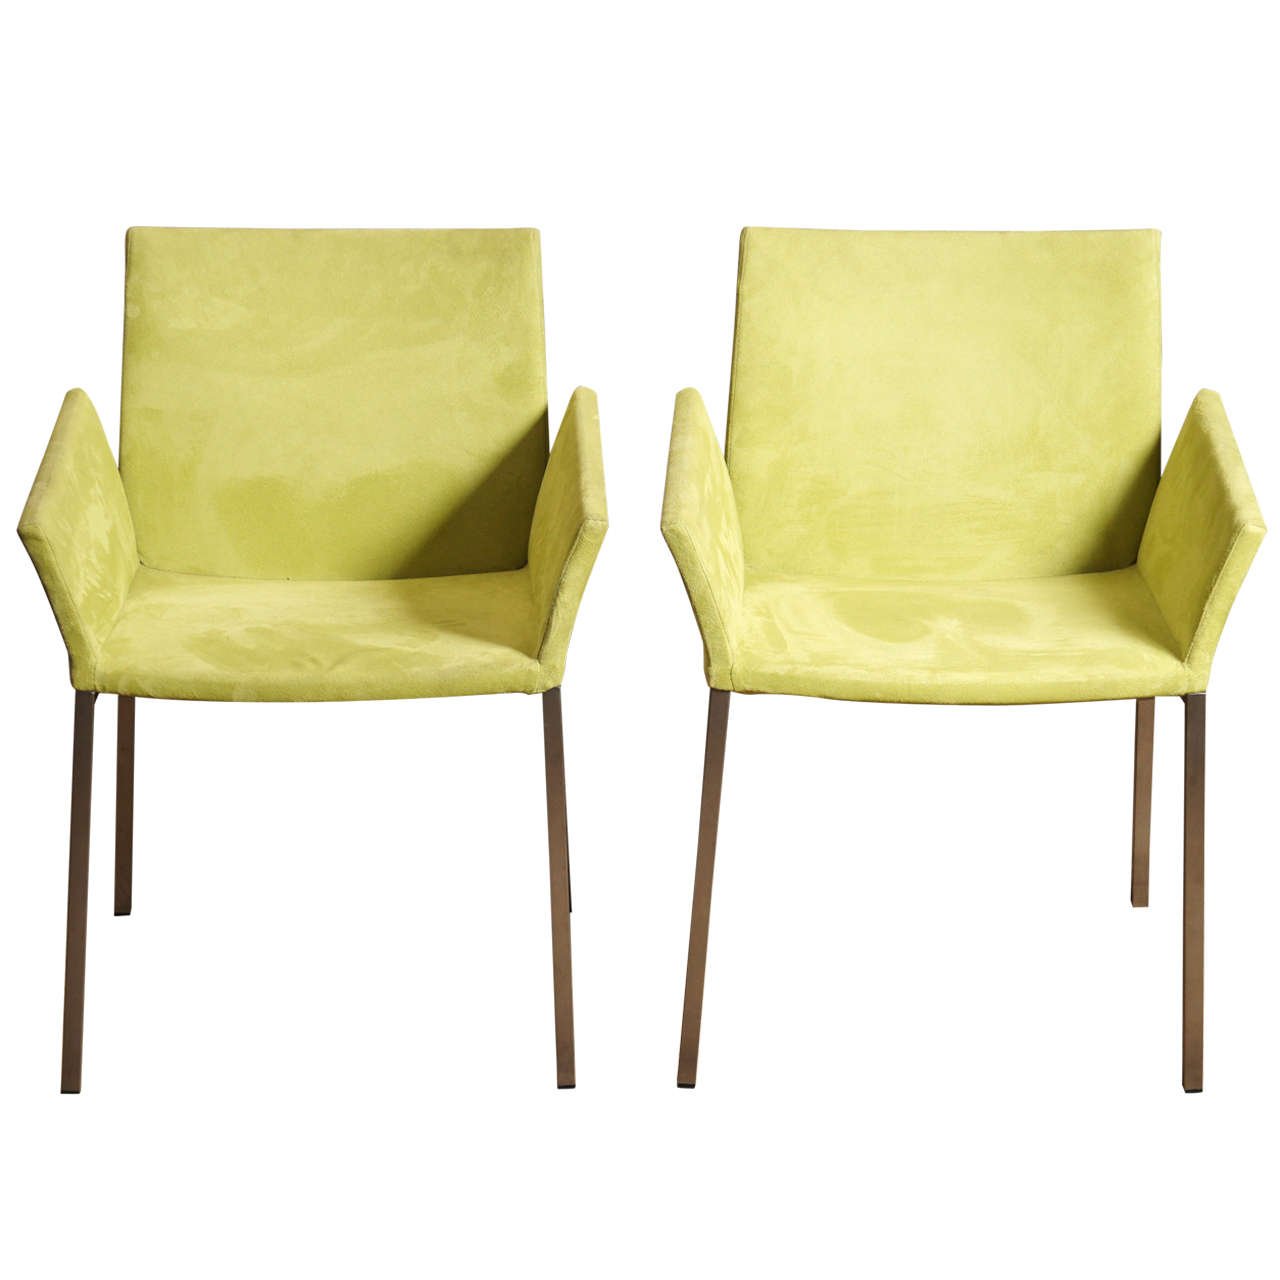 american leather swing chair bob steelcase pair lime suede chairs at 1stdibs